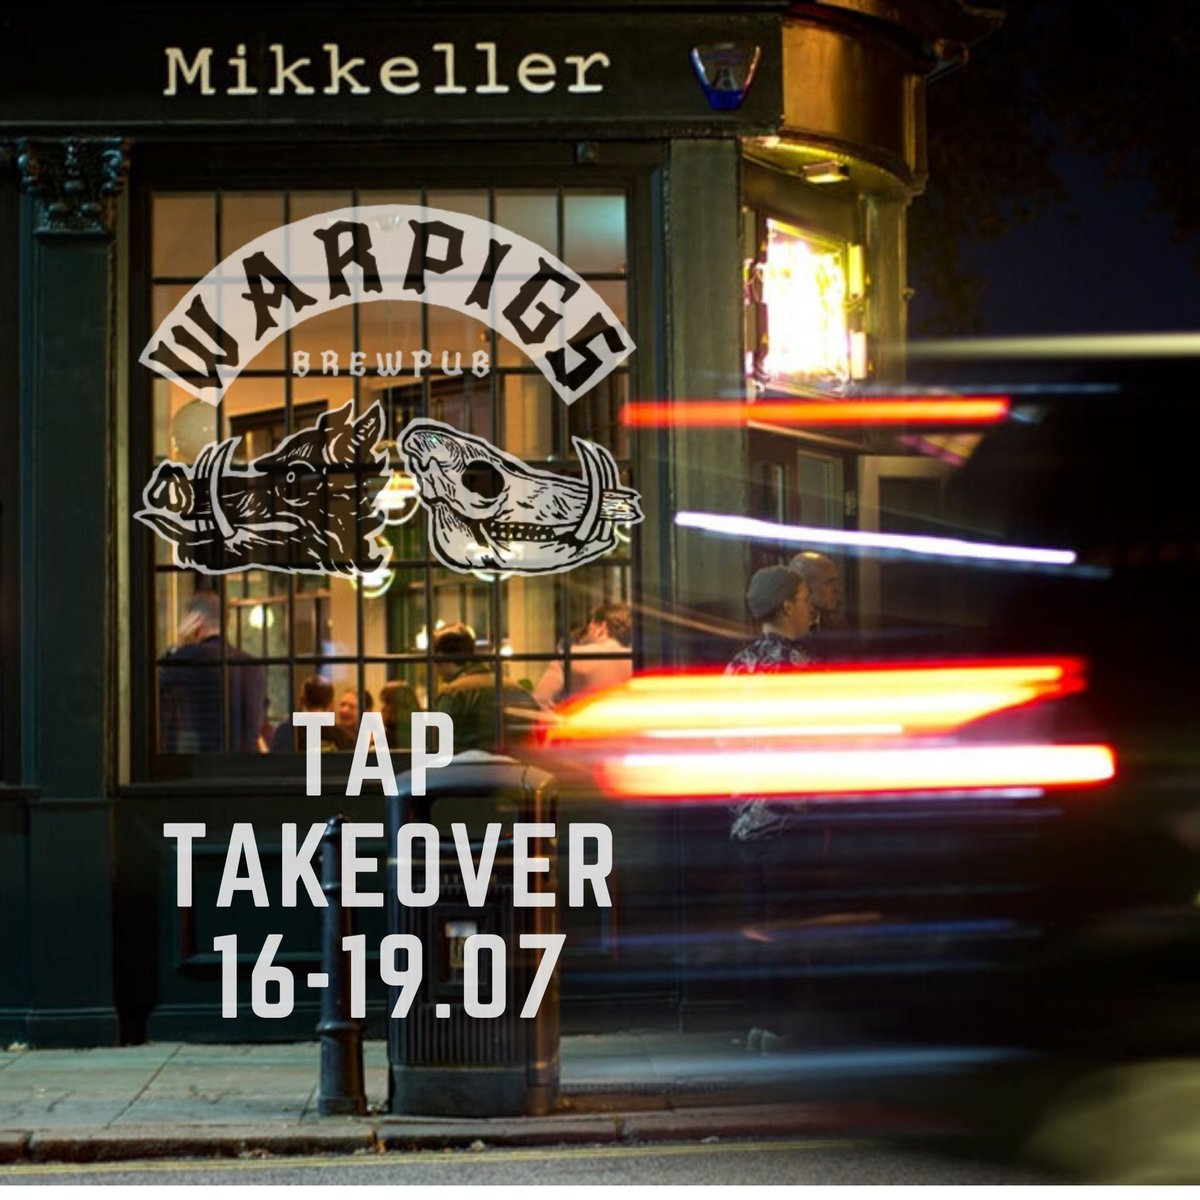 Warpigs Tap Takeover 16-19.07  We're spreading the event across 4 days due to limited space. Beers also available to take away from the window!  Turbine Factory Session IPA  Frank the Tank Pale Ale  House of Dongo Brown Ale  Wheezin' the Juice NEIPA  Big Drunk Baby IIPA https://t.co/nI83zlFp3r